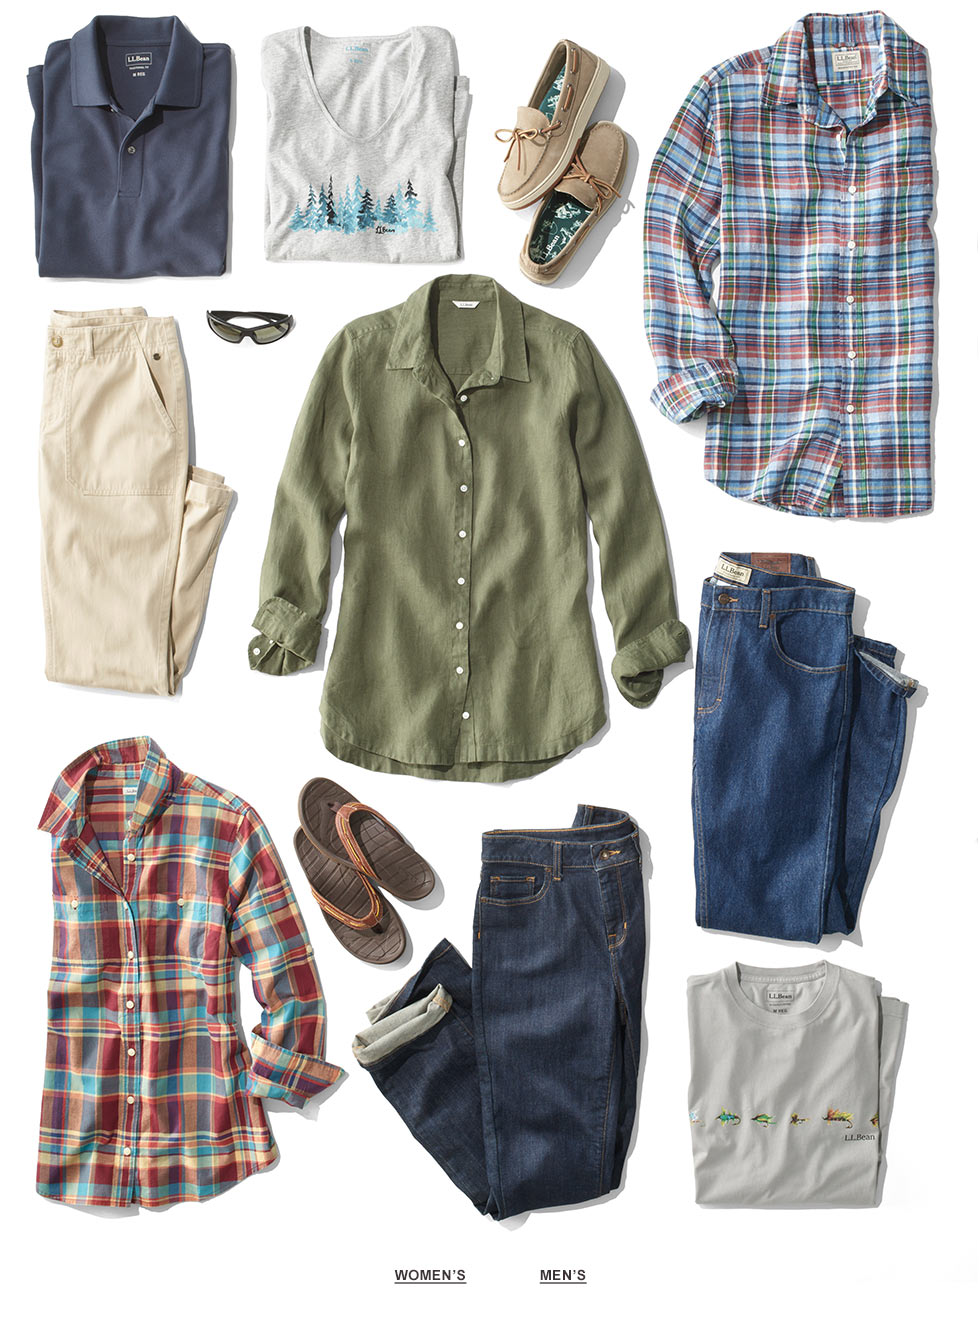 An assortment of men's and women's L.L. Bean summer clothing and accessories.